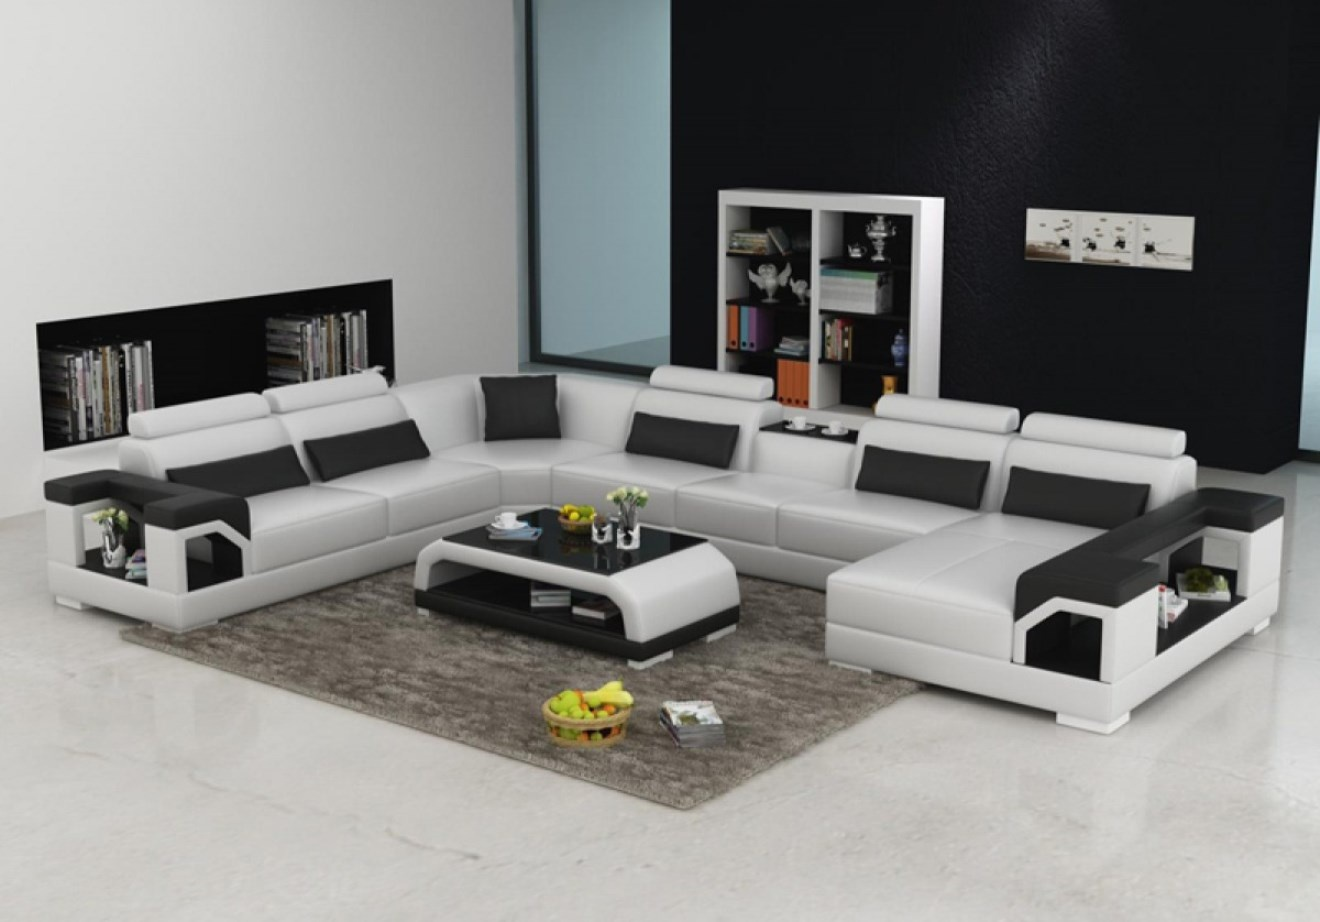 canap d angle 7 places royal sofa id e de canap et meuble maison. Black Bedroom Furniture Sets. Home Design Ideas